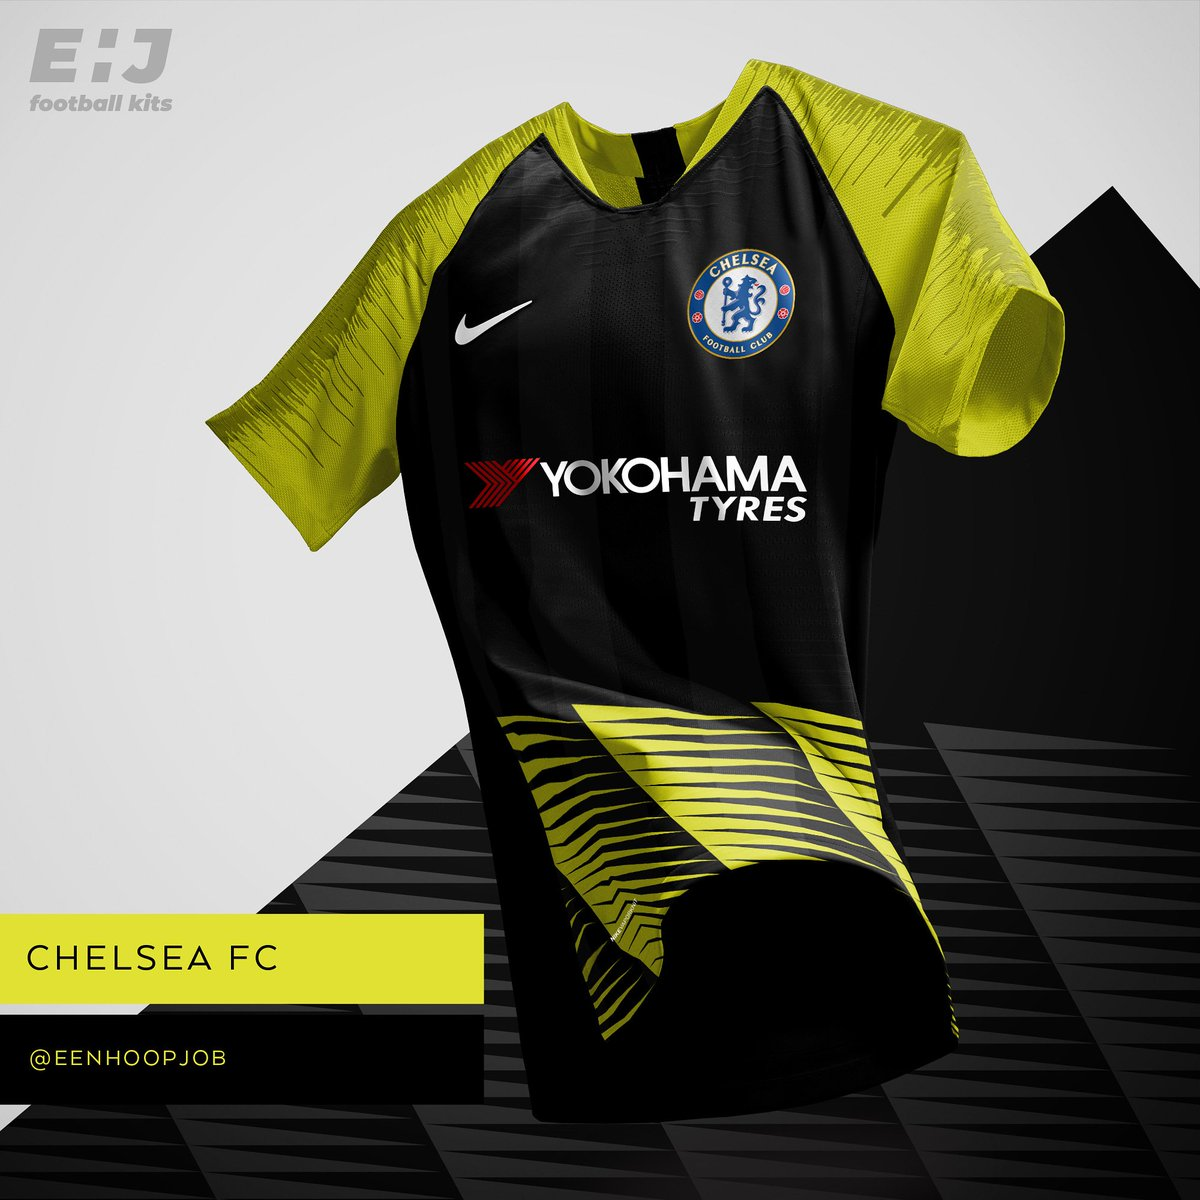 caae6476b Job - Eenhoopjob Football Kit Designs Chelsea FC Away Kit Concept Please  rate 1-10. Who is your favorite Chelsea player